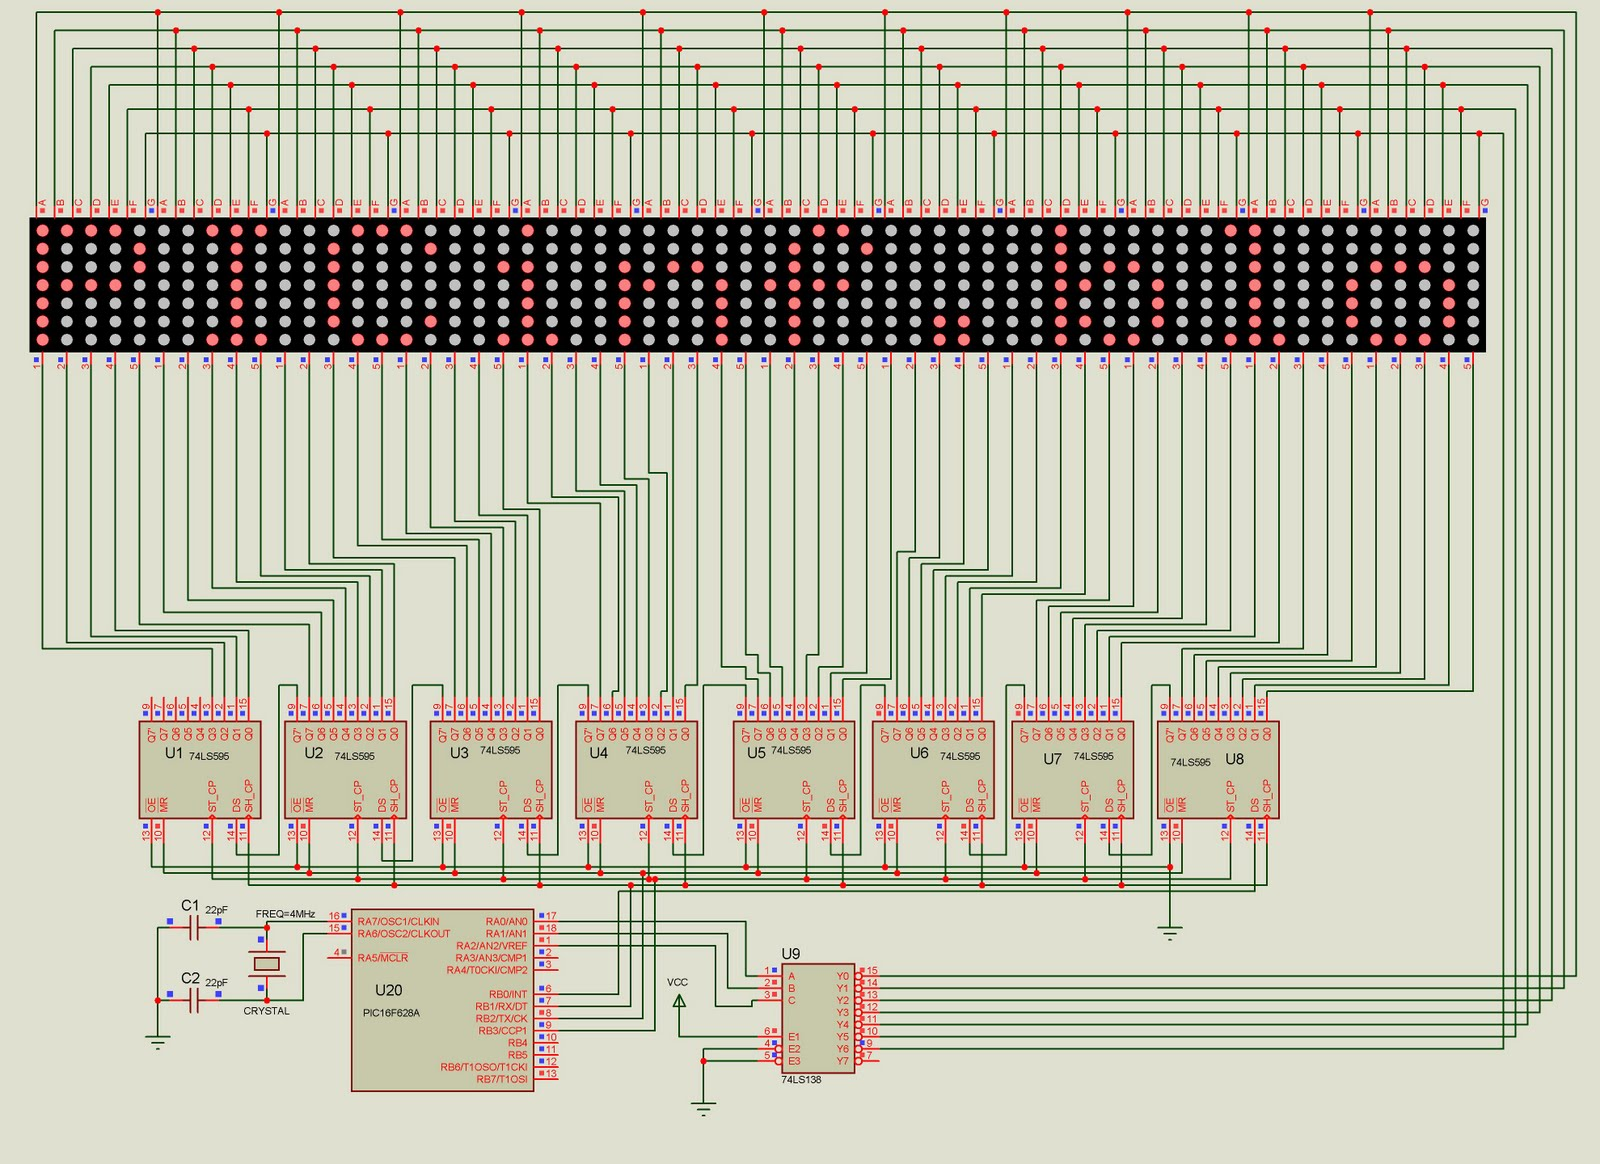 Led Display Using 8051 Microcontroller Seven Segment Circuit Diagram Further Matrix Pictures A Note About 7